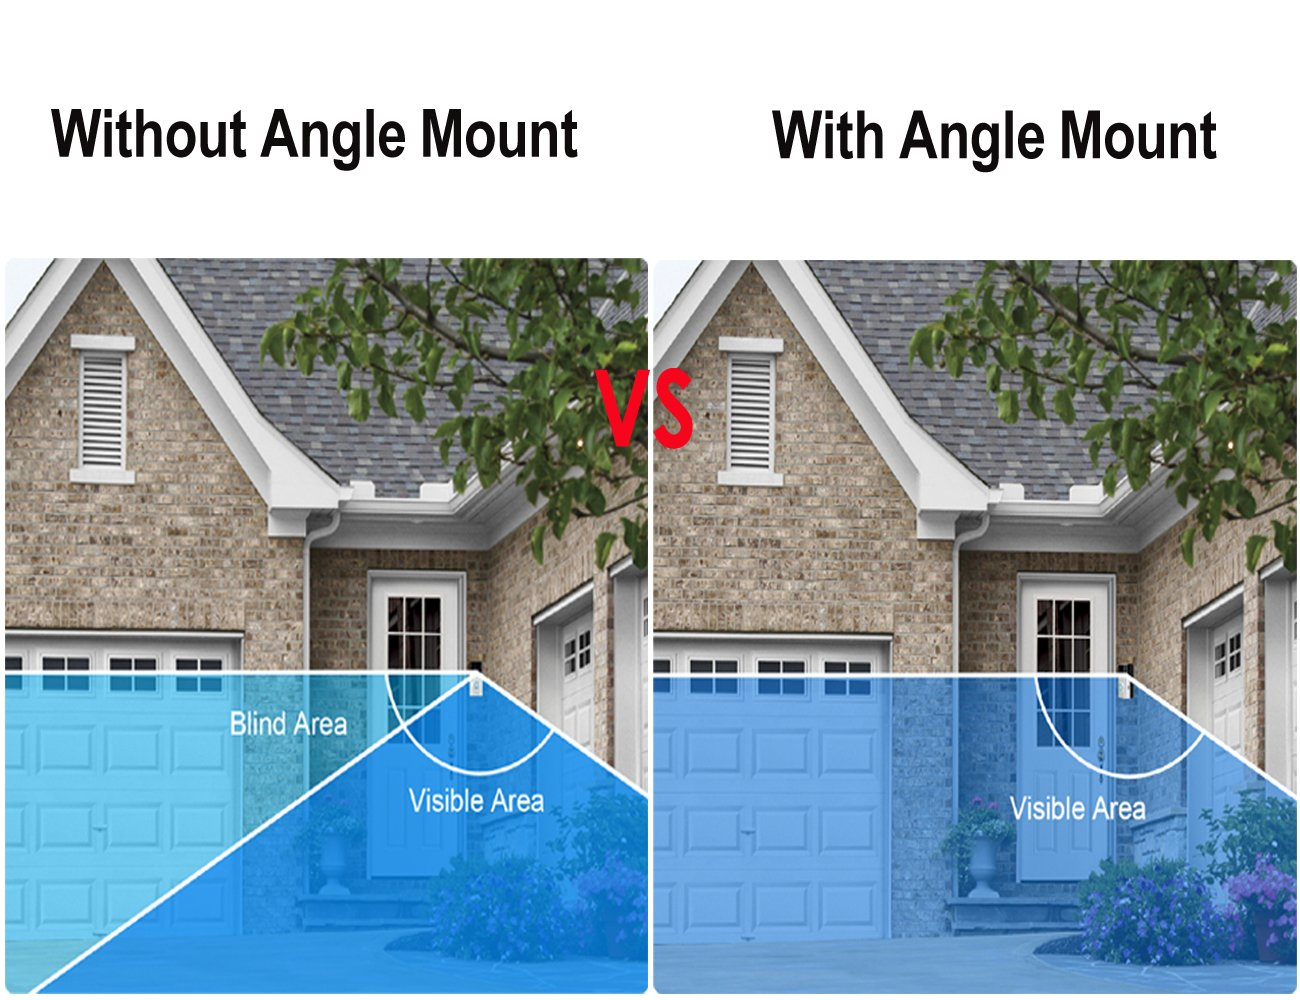 Details About Adjustable Angle Mount For Ring Video Doorbell 2 2nd Gen Wi Fi Enabled Residential Door Bell Installation 1st Cavn Adapter Mounting Plate Bracket Wedge